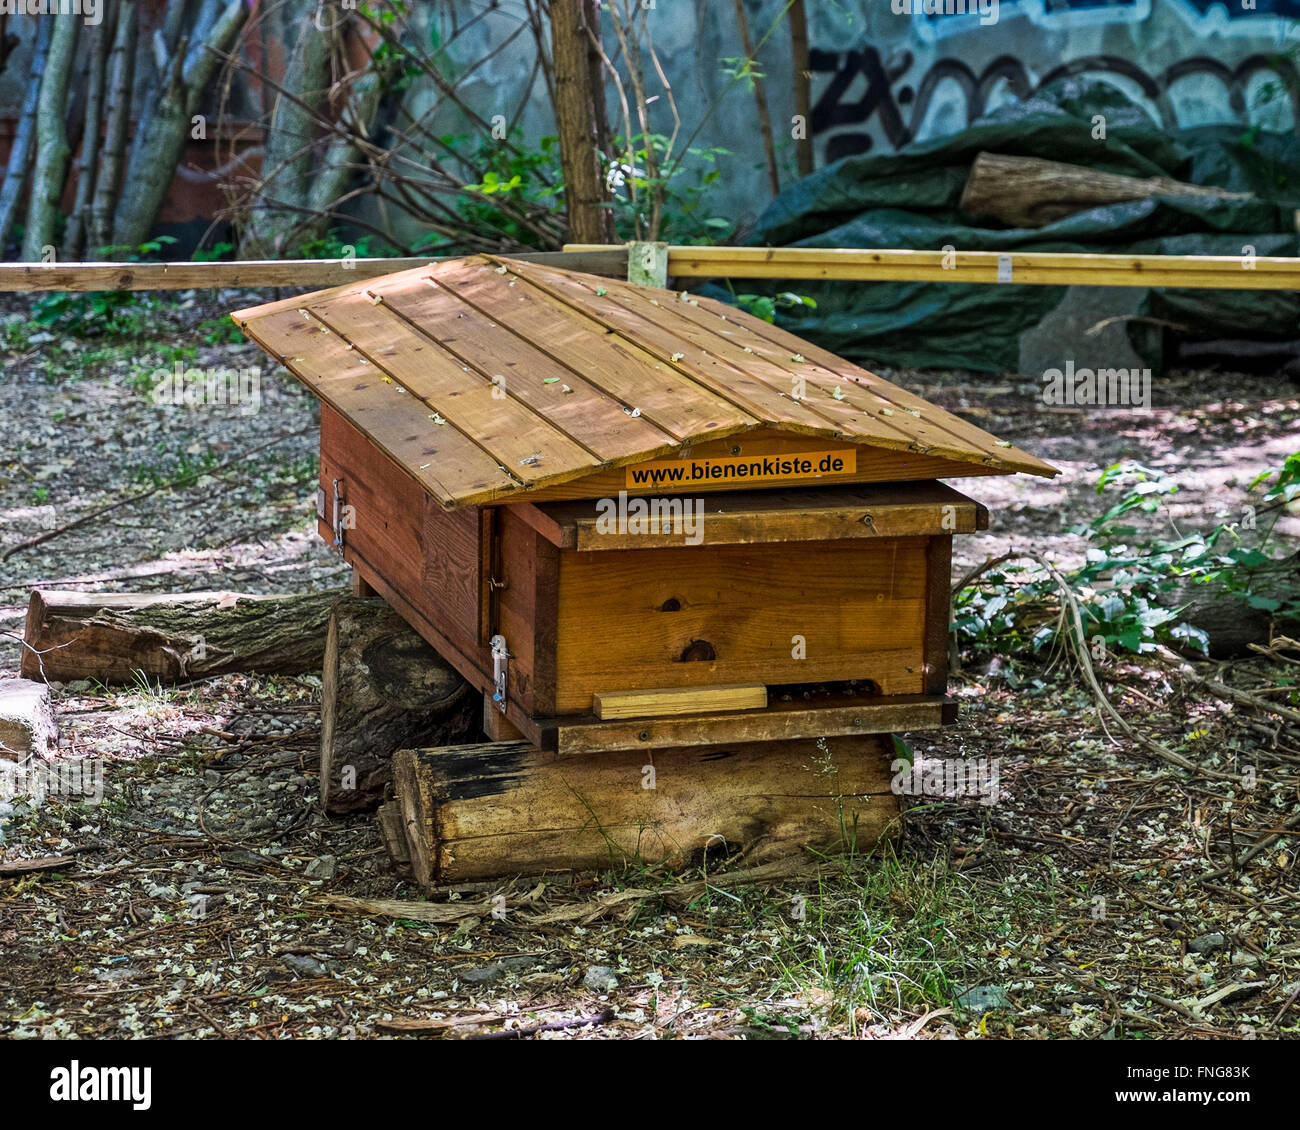 Prinzessinnengarten, Princesses garden bee hive using recycled materials in urban ecologically friendly garden - Stock Image